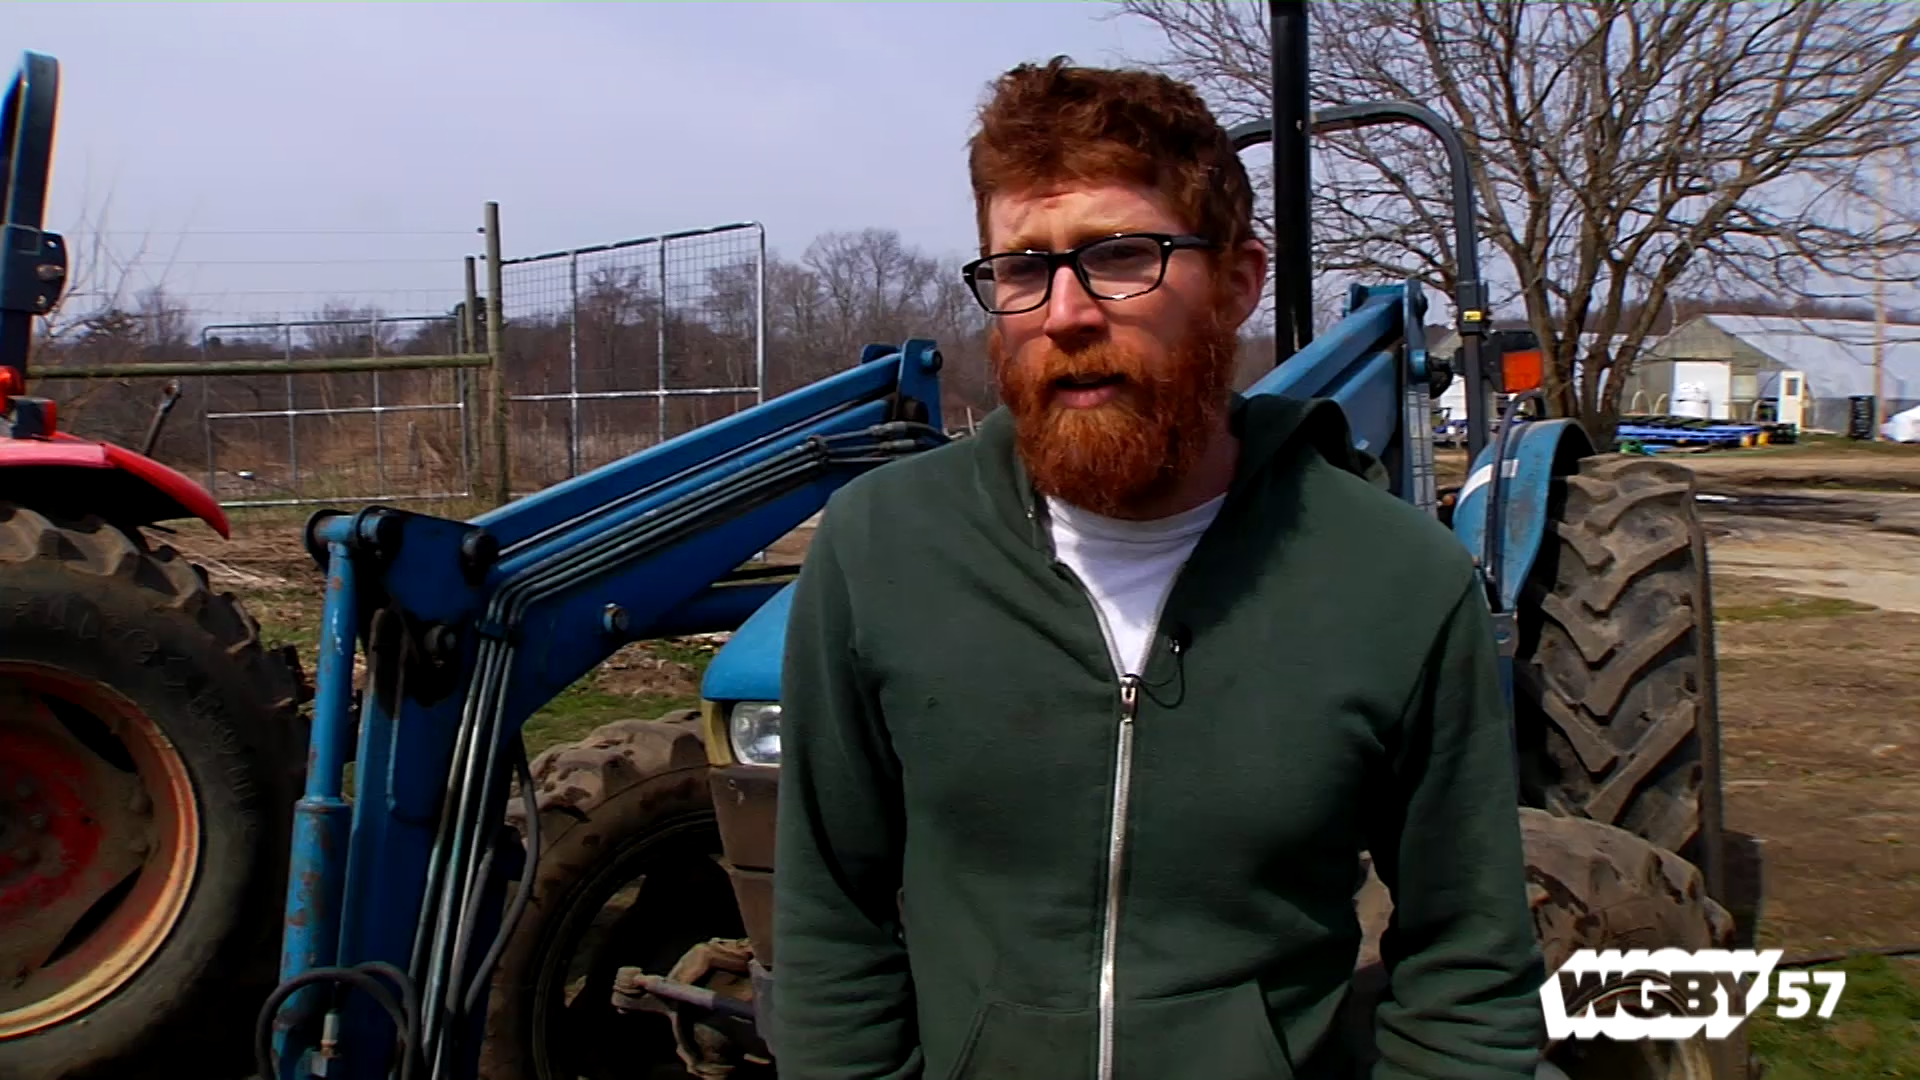 Rhode Island's state government is launching a new real estate experiment, offering plots of land for bargain basement prices. But there are some strings attached. As Connecting Point's Stephanie Leydon shows us, only farmers are eligible for these discount farmland plots.